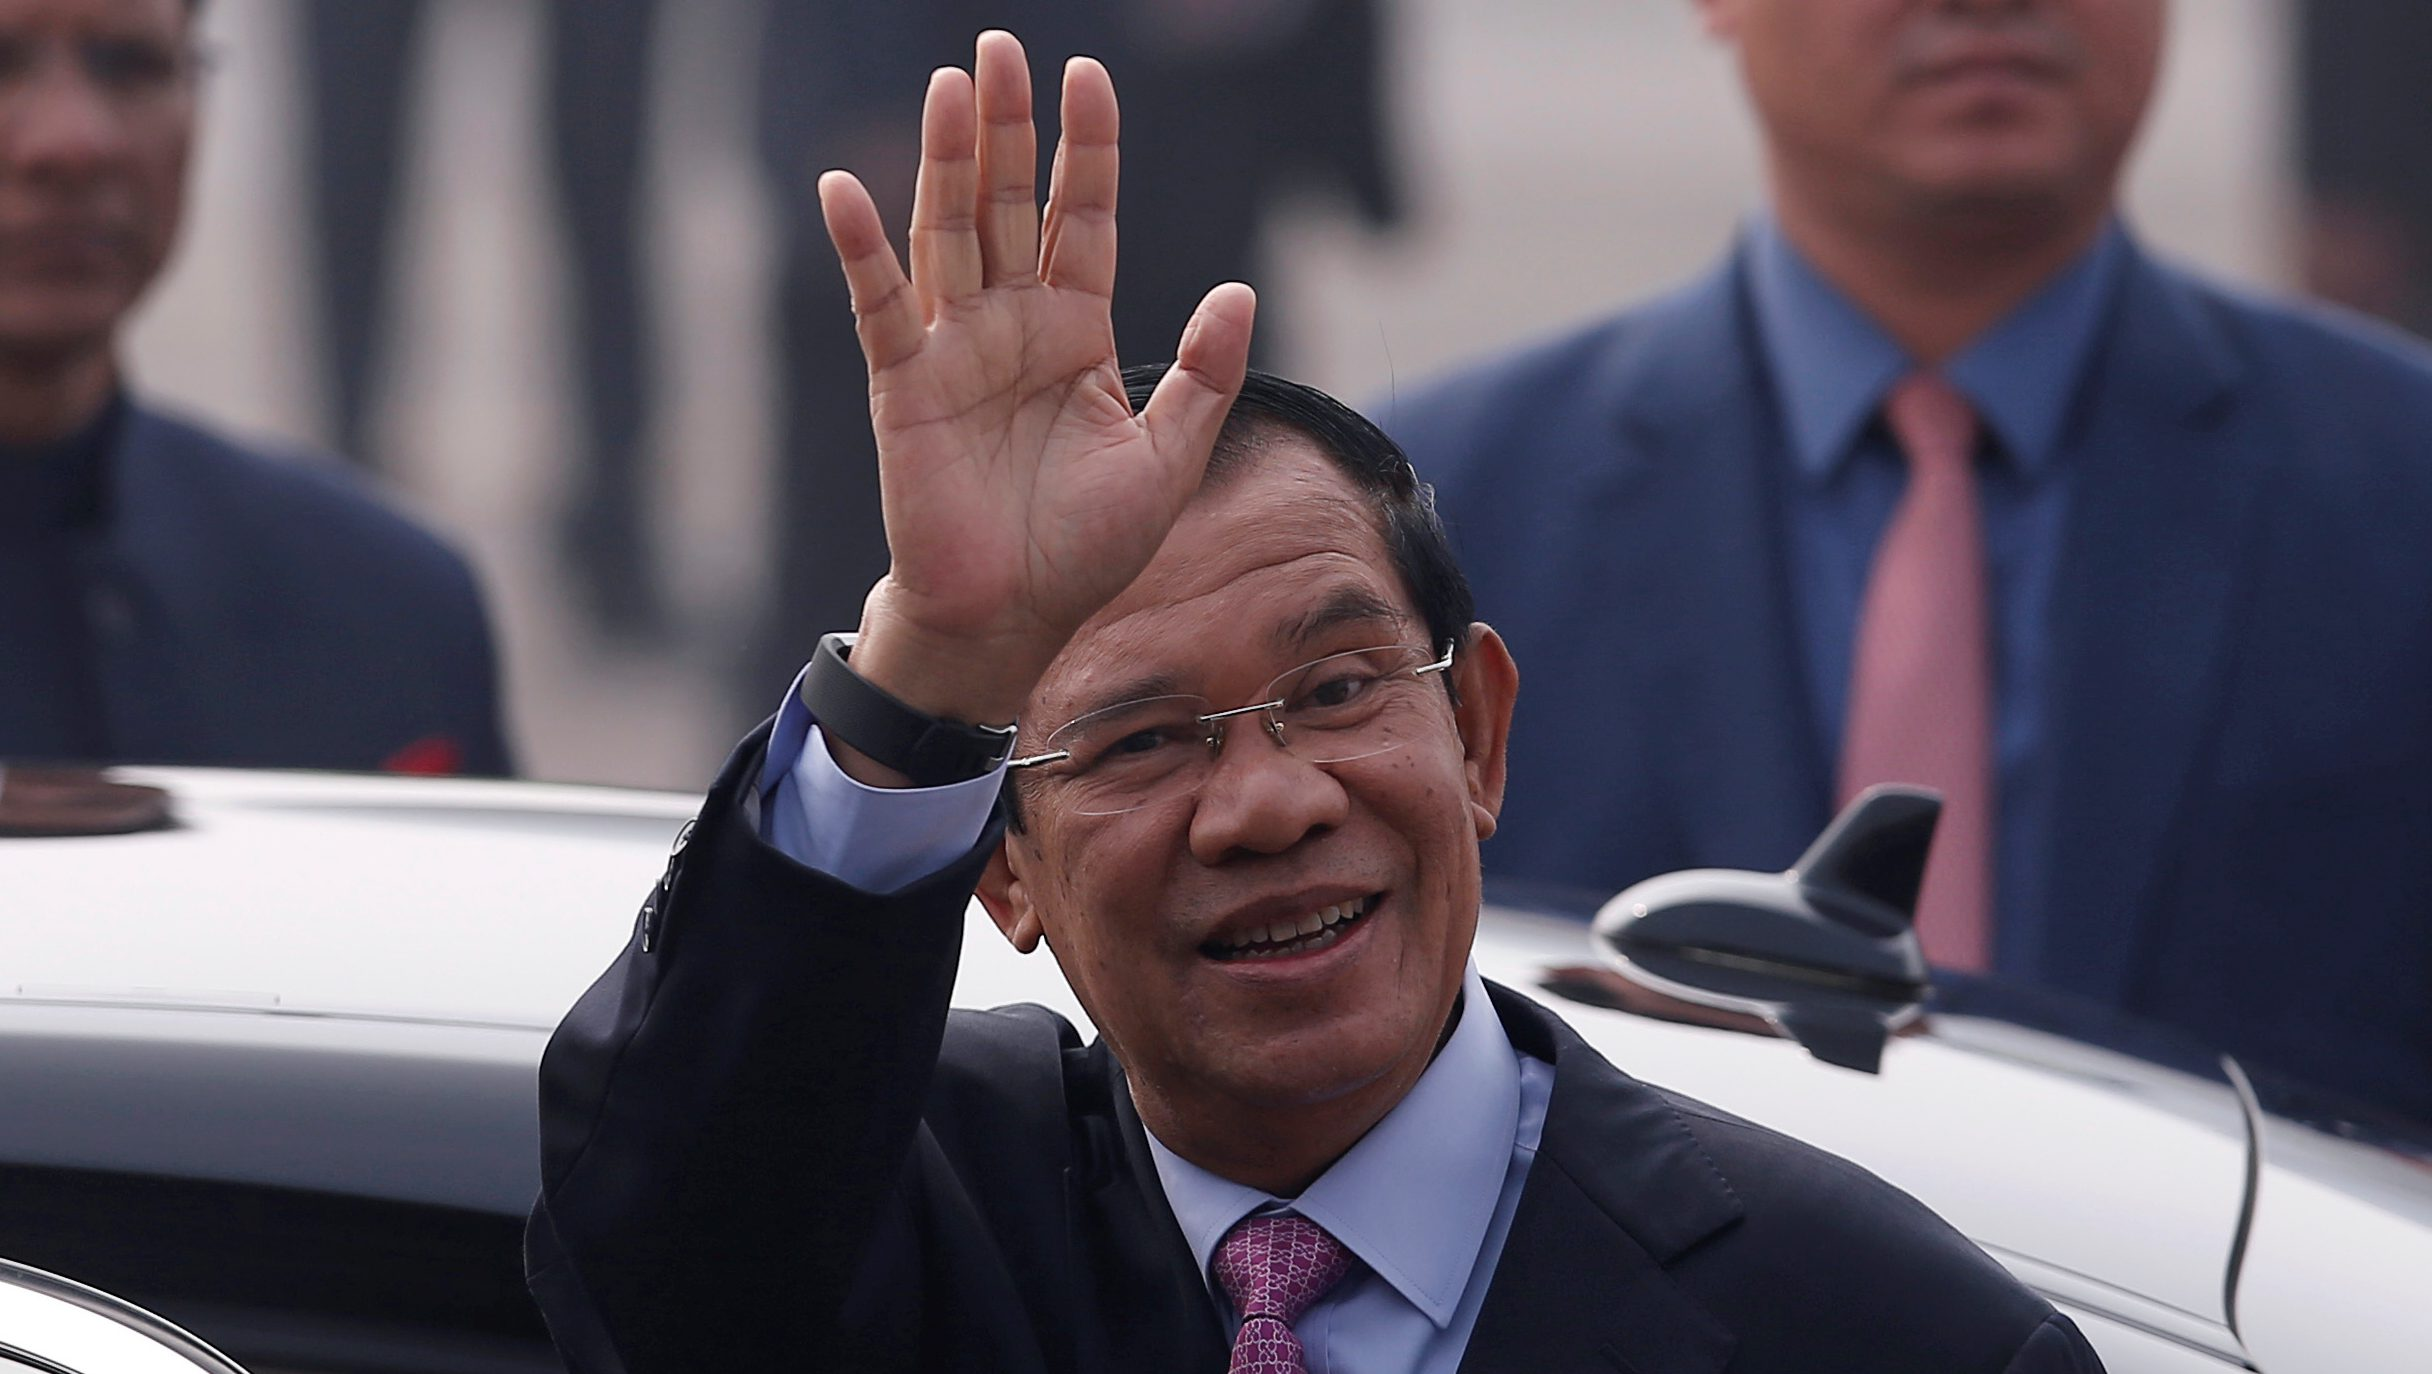 Cambodia's Prime Minister Hun Sen waves upon his arrival at Air Force Station Palam in New Delhi, India, January 24, 2018. REUTERS/Adnan Abidi - RC13046FBA70